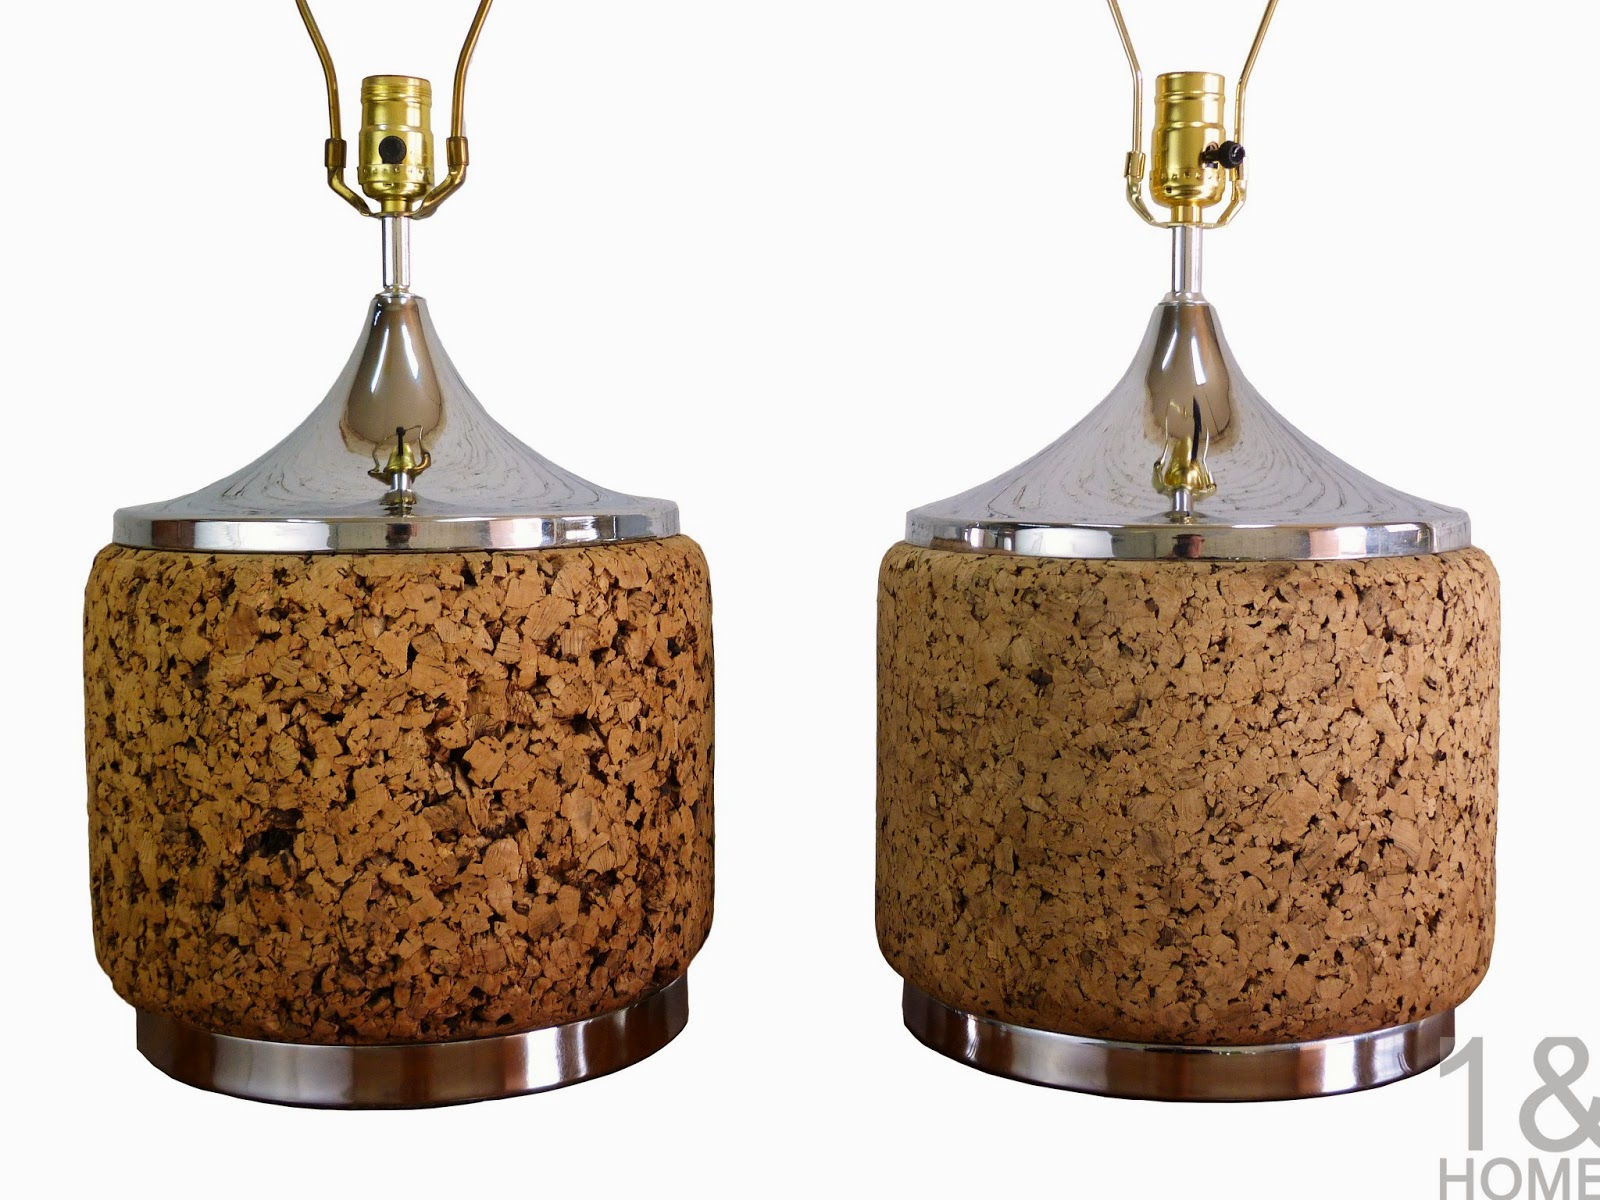 chrome and cork table lamps by Laurel.